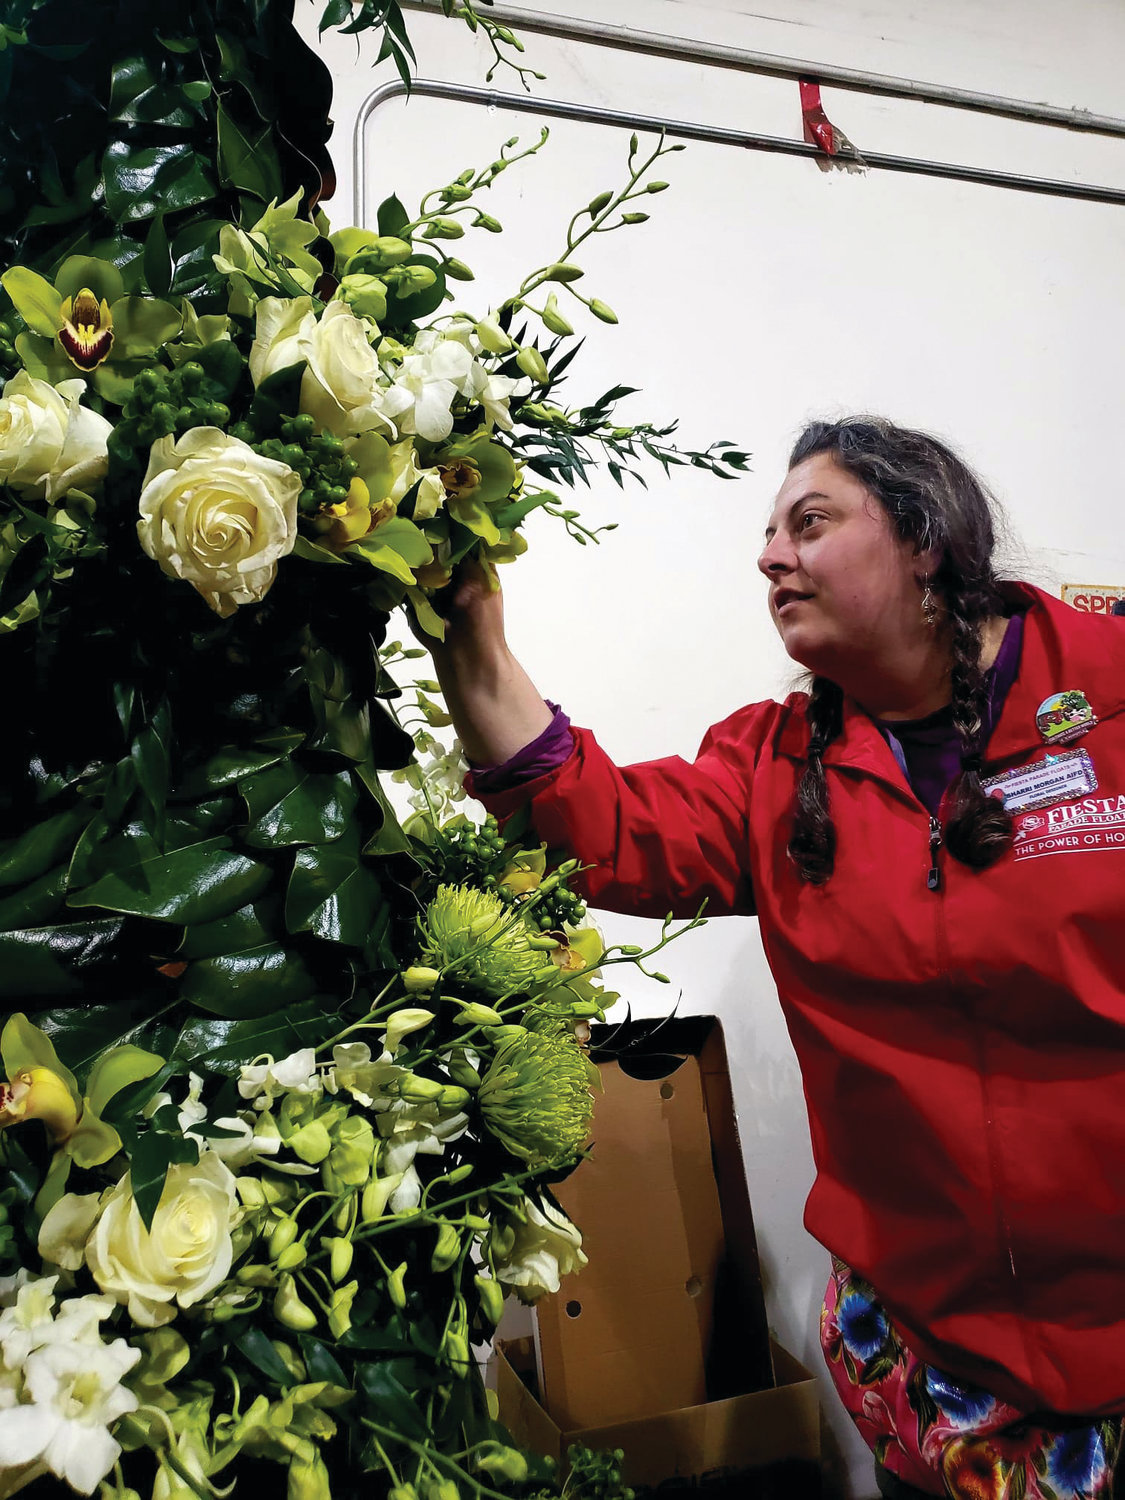 Sharrai Morgan inspects the floral arrangements of the float she and her team worked on non-stop from Dec. 26-31.